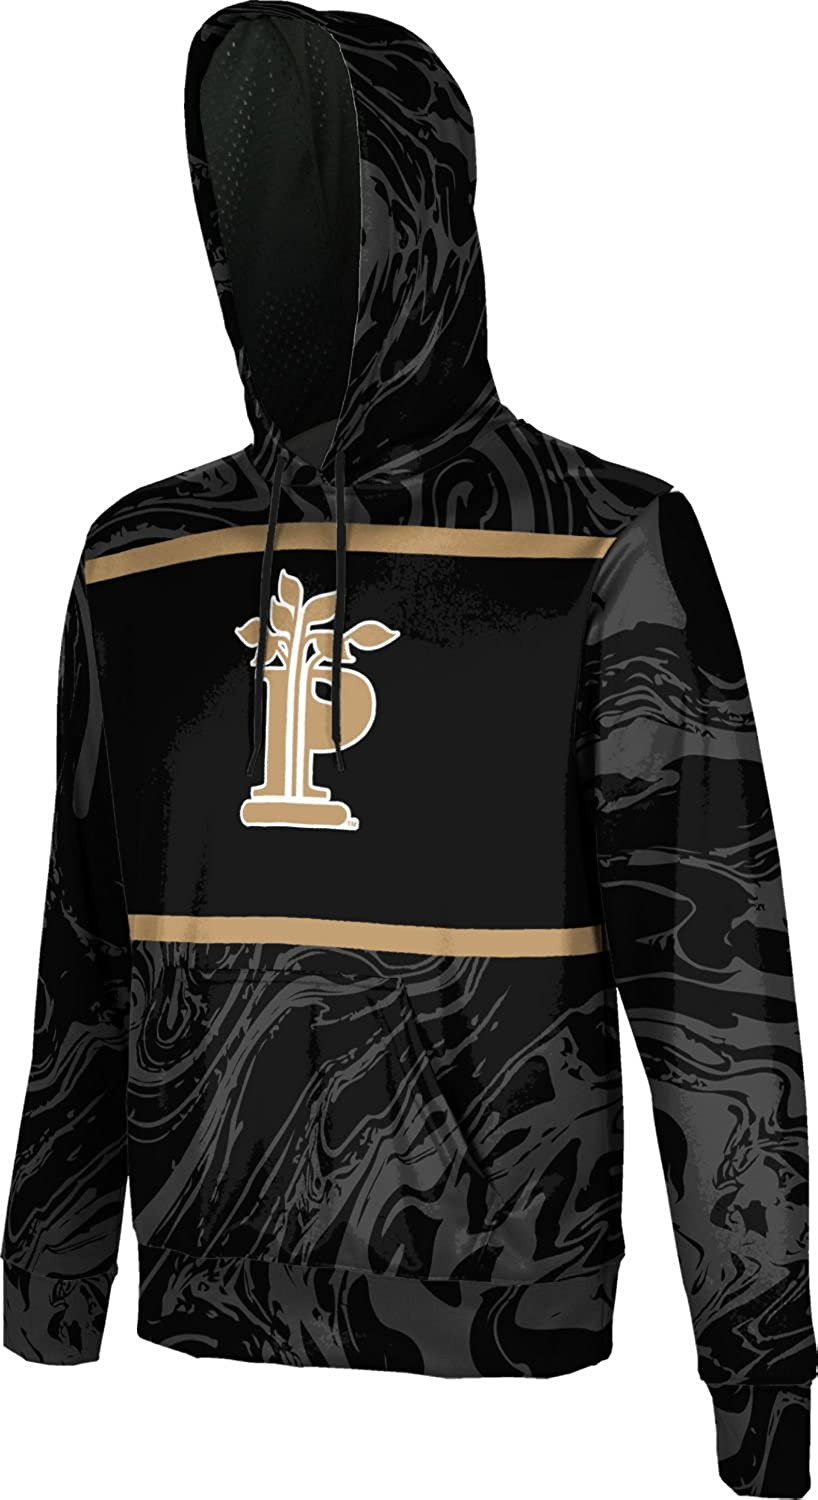 Ripple ProSphere Pierpont Community /& Technical College Boys Pullover Hoodie